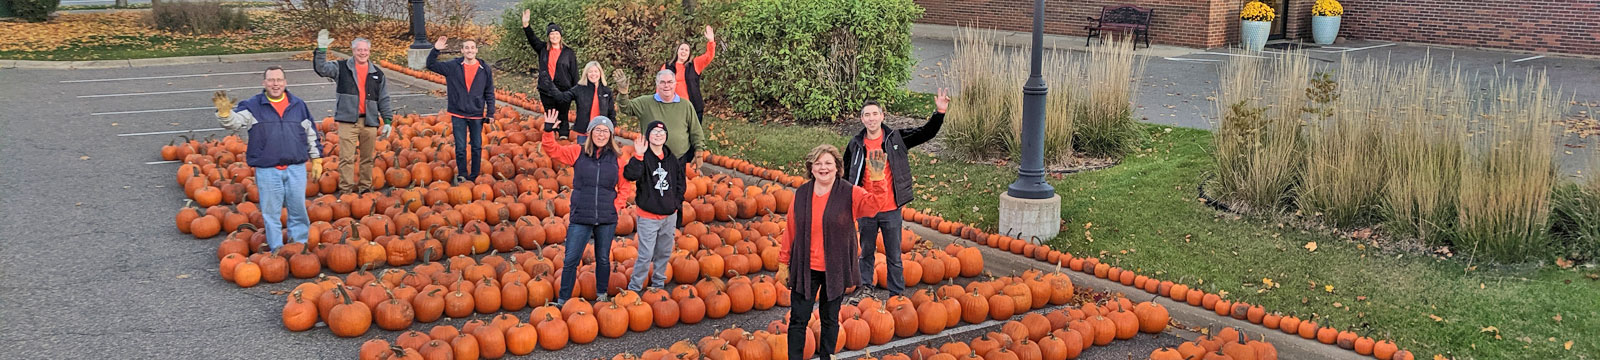 image of a group of Gateway Bank associates waving at the annual fall festival